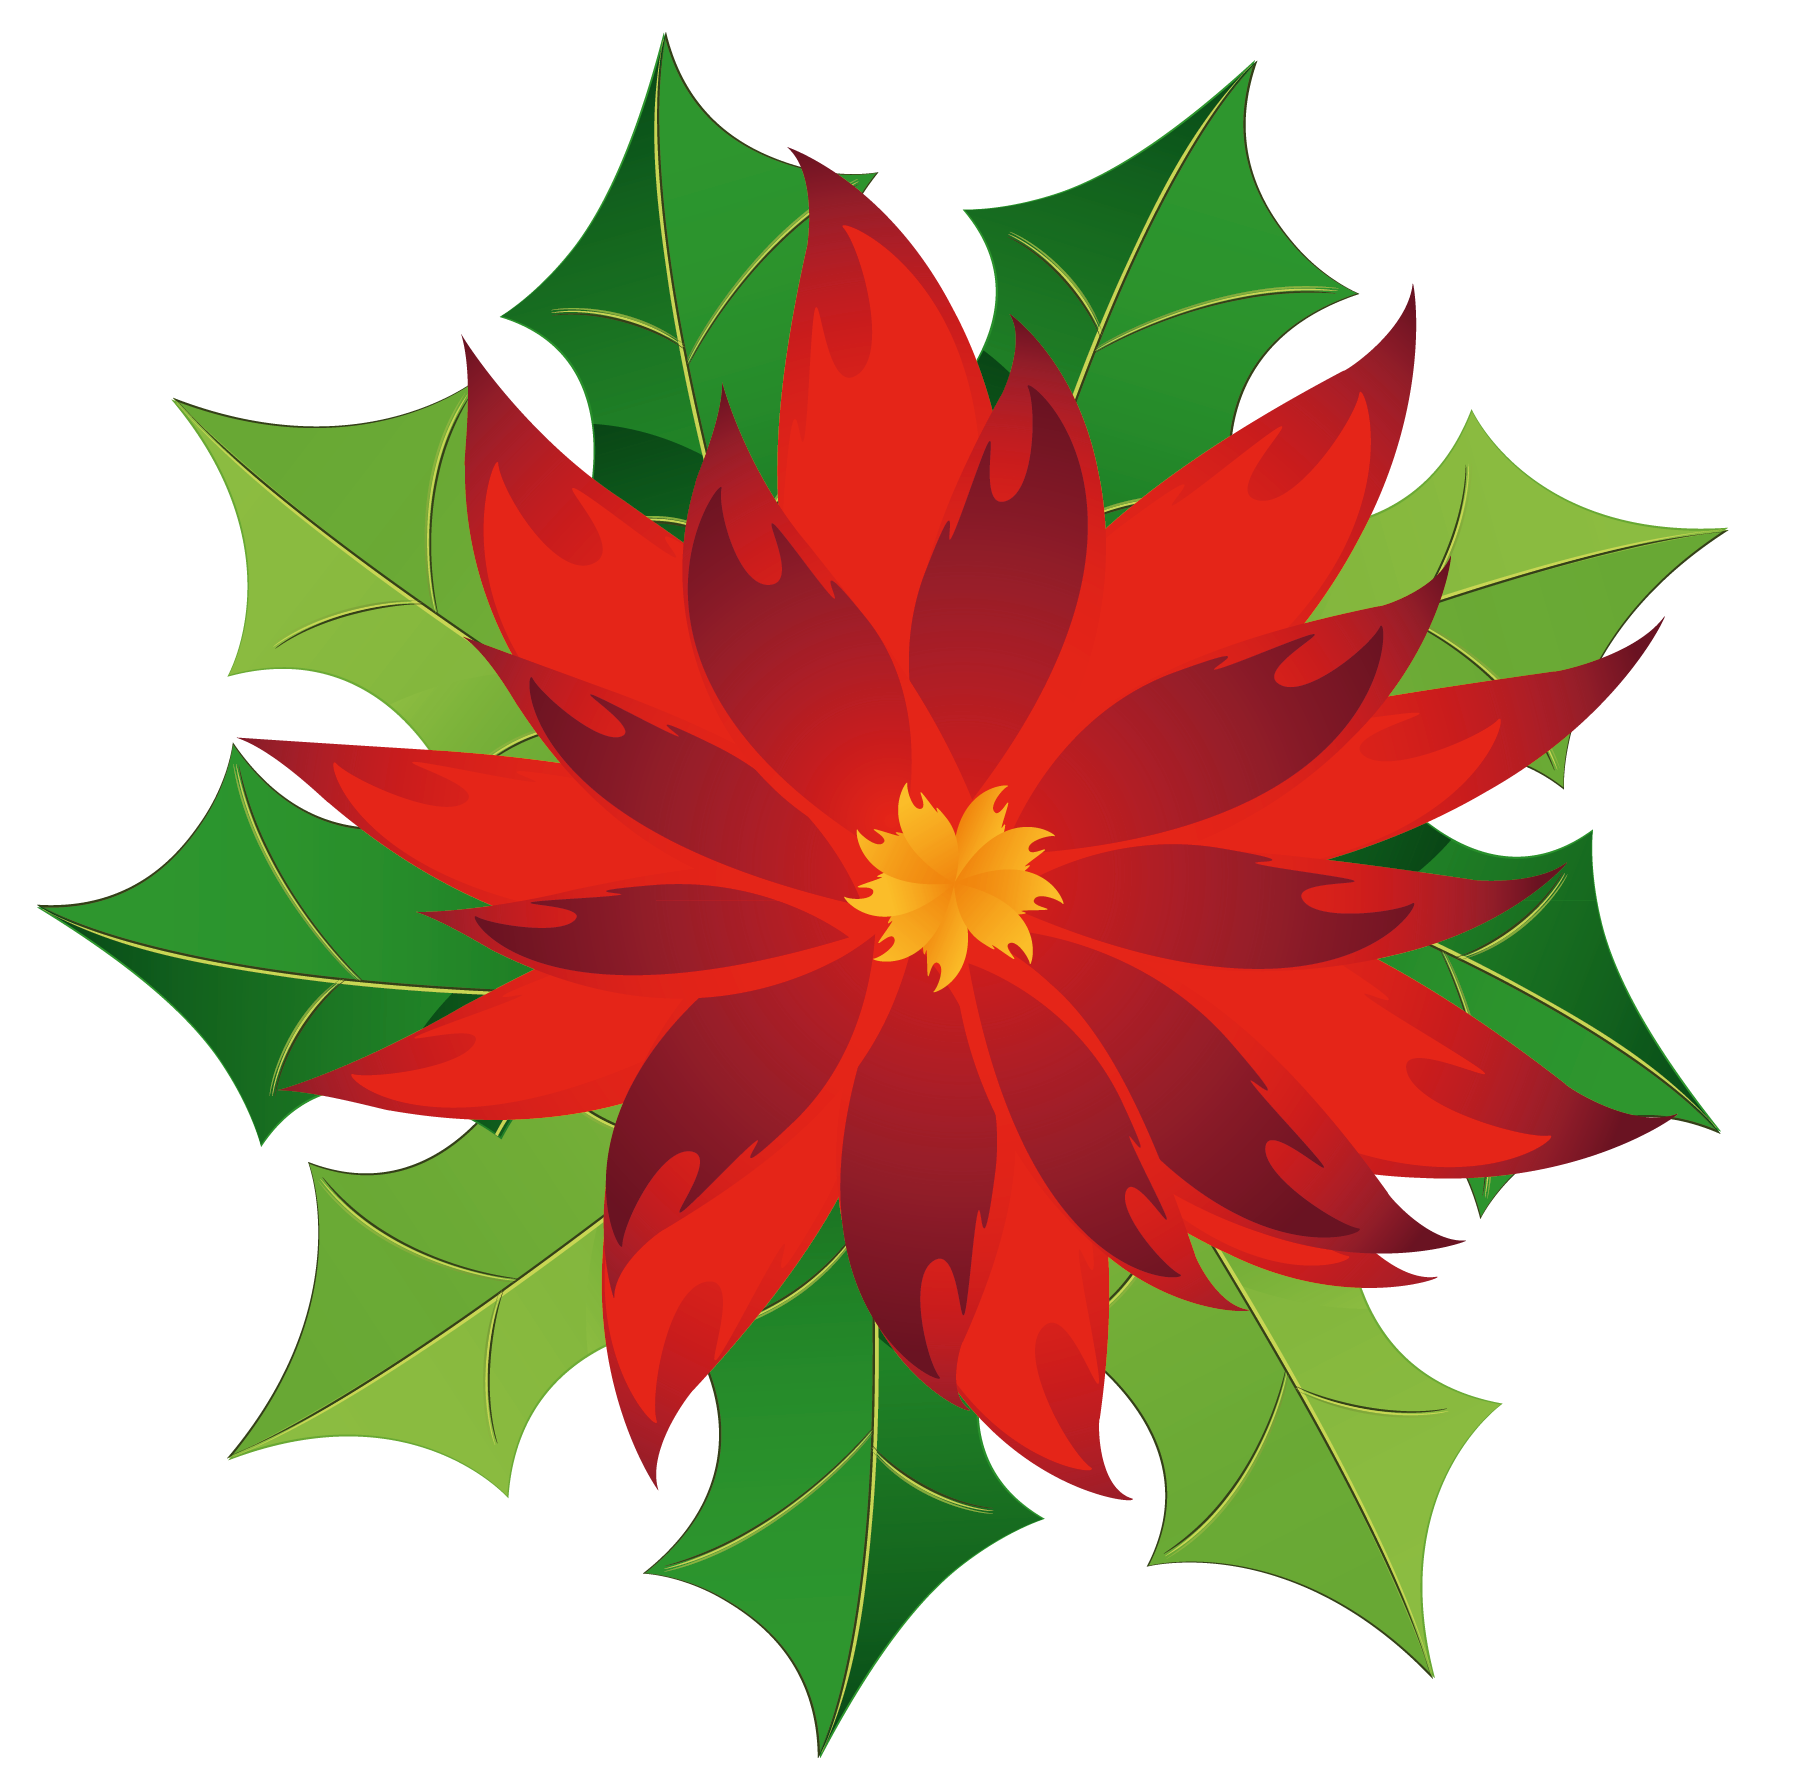 Poinsettia clipart. Christmas gallery yopriceville high